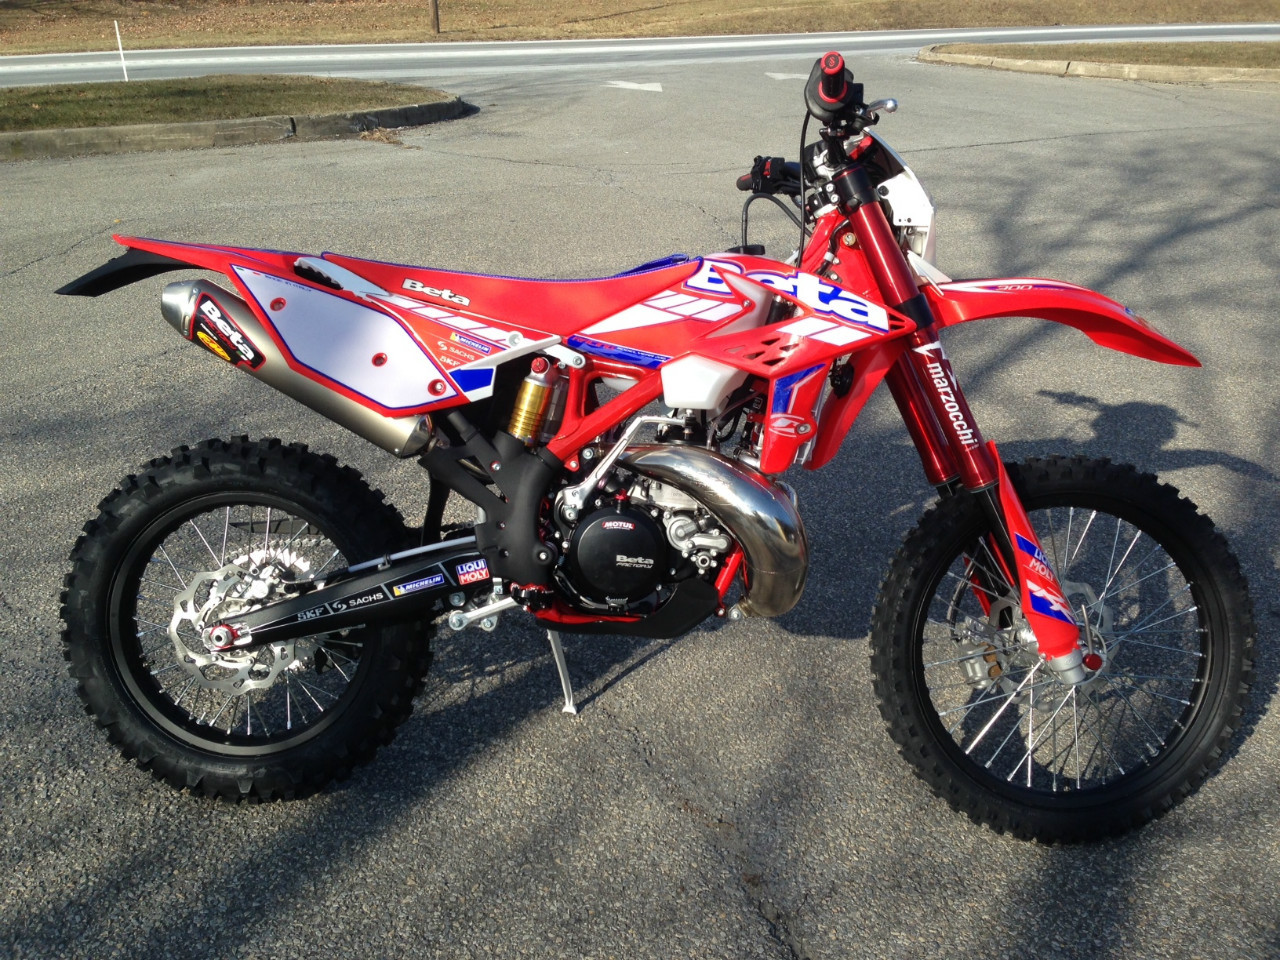 2015 Beta 300 RR - RACING (RACE EDITION), motorcycle listing